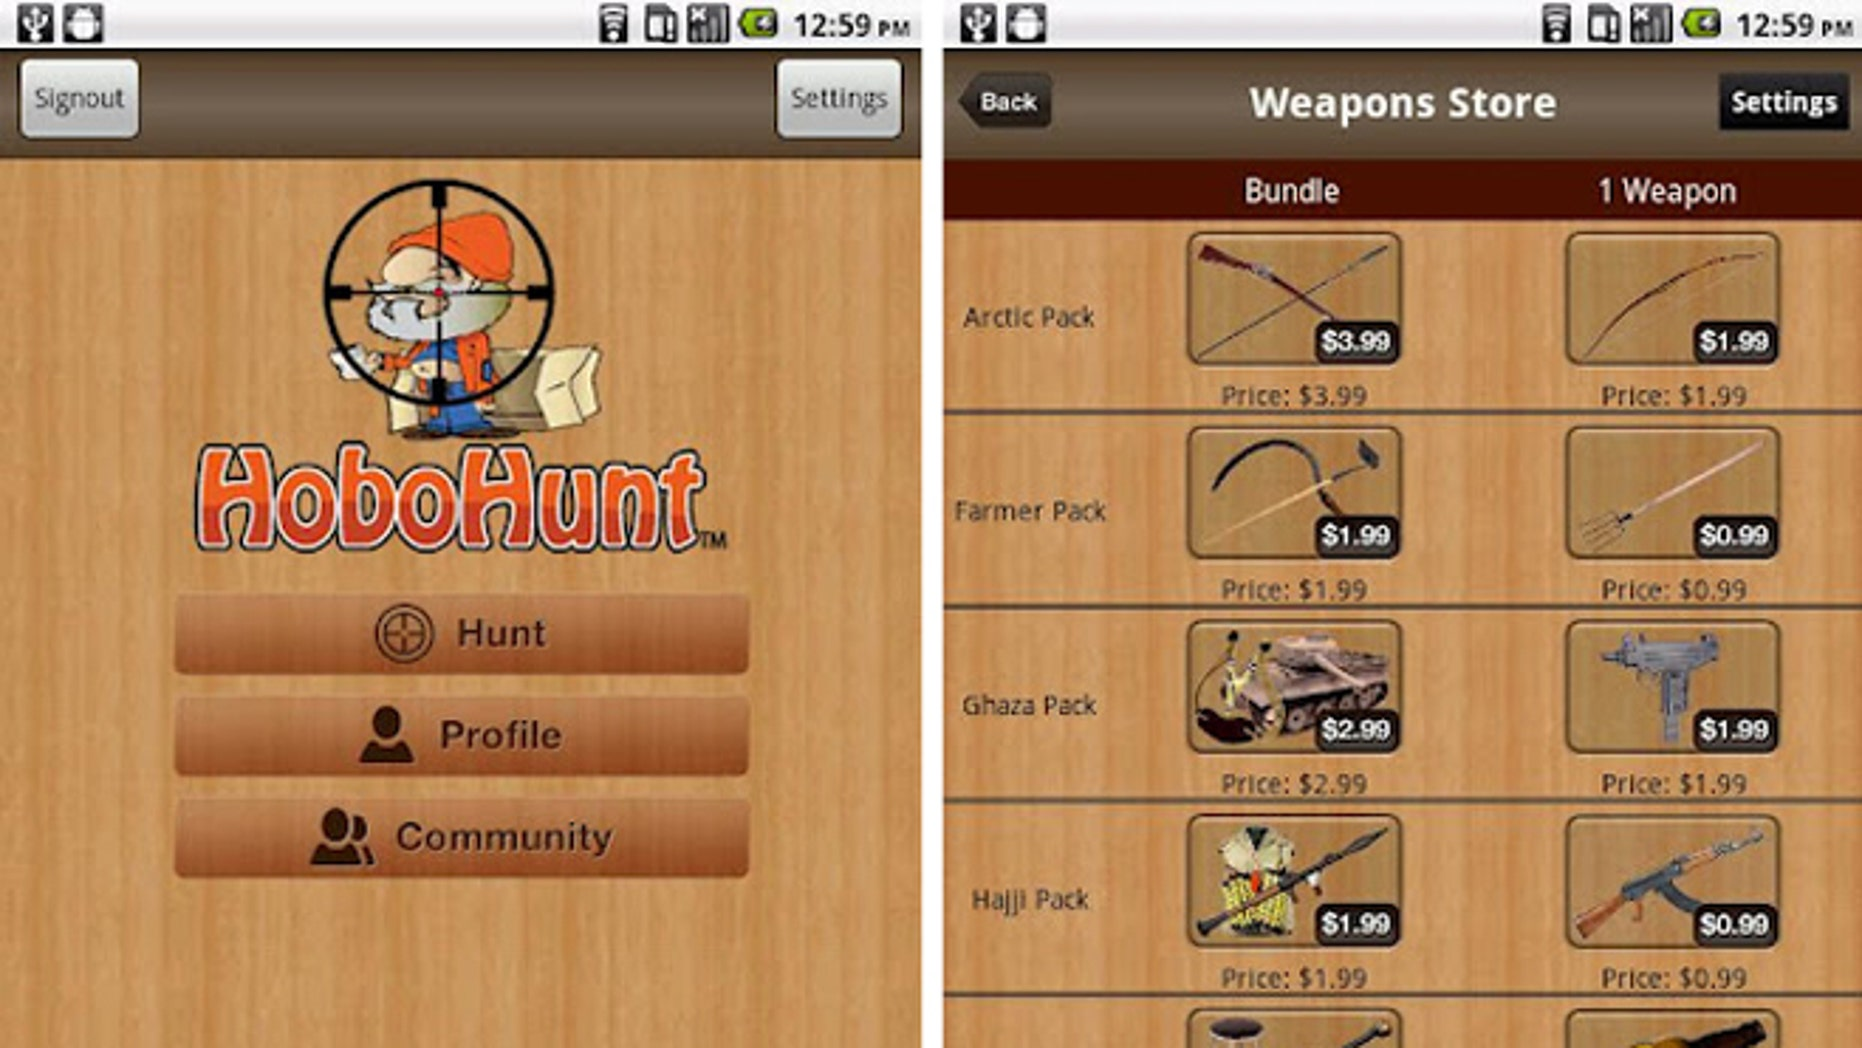 Buy the HoboHunt app, purchase weapons at the in game store, and start virtually killing the less fortunate, urges a new app available for Android-based mobile phones.